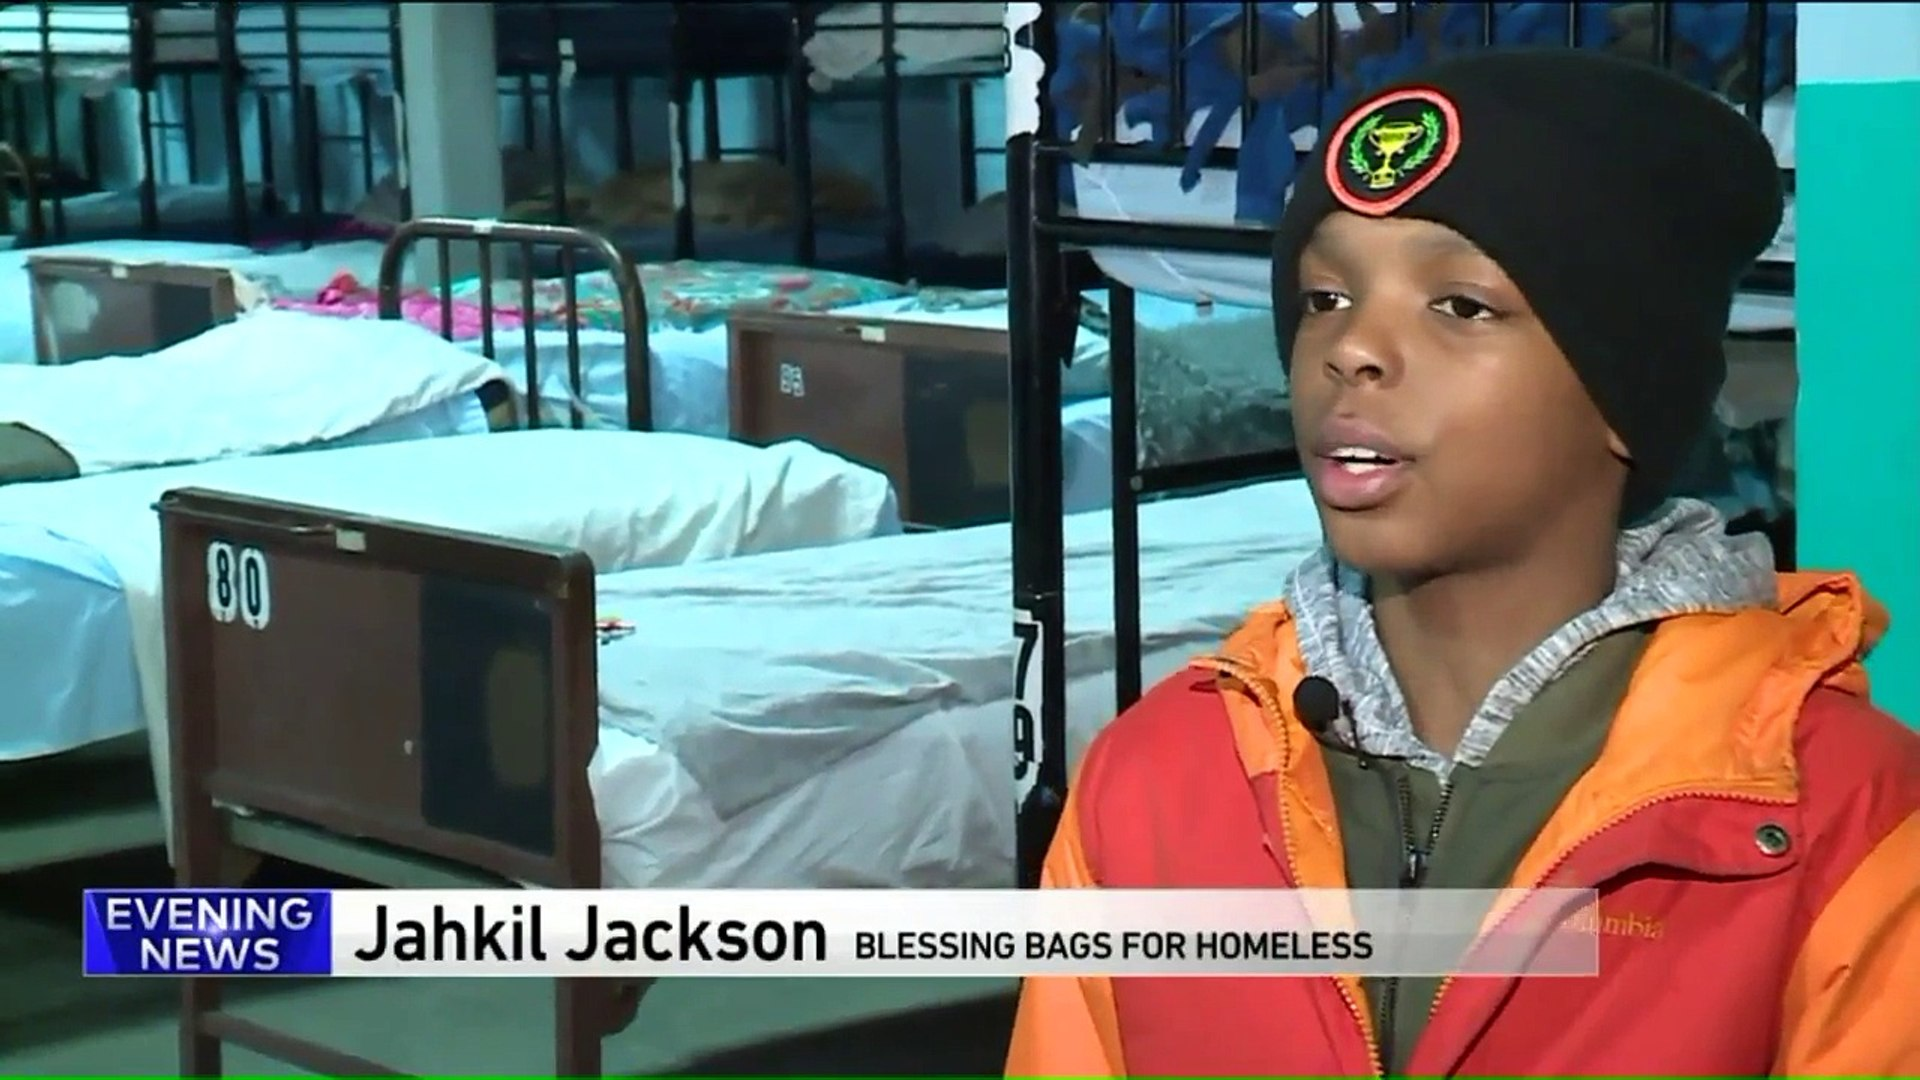 10-Year-Old Gives Thousands of 'Blessing Bags' to Chicago's Homeless